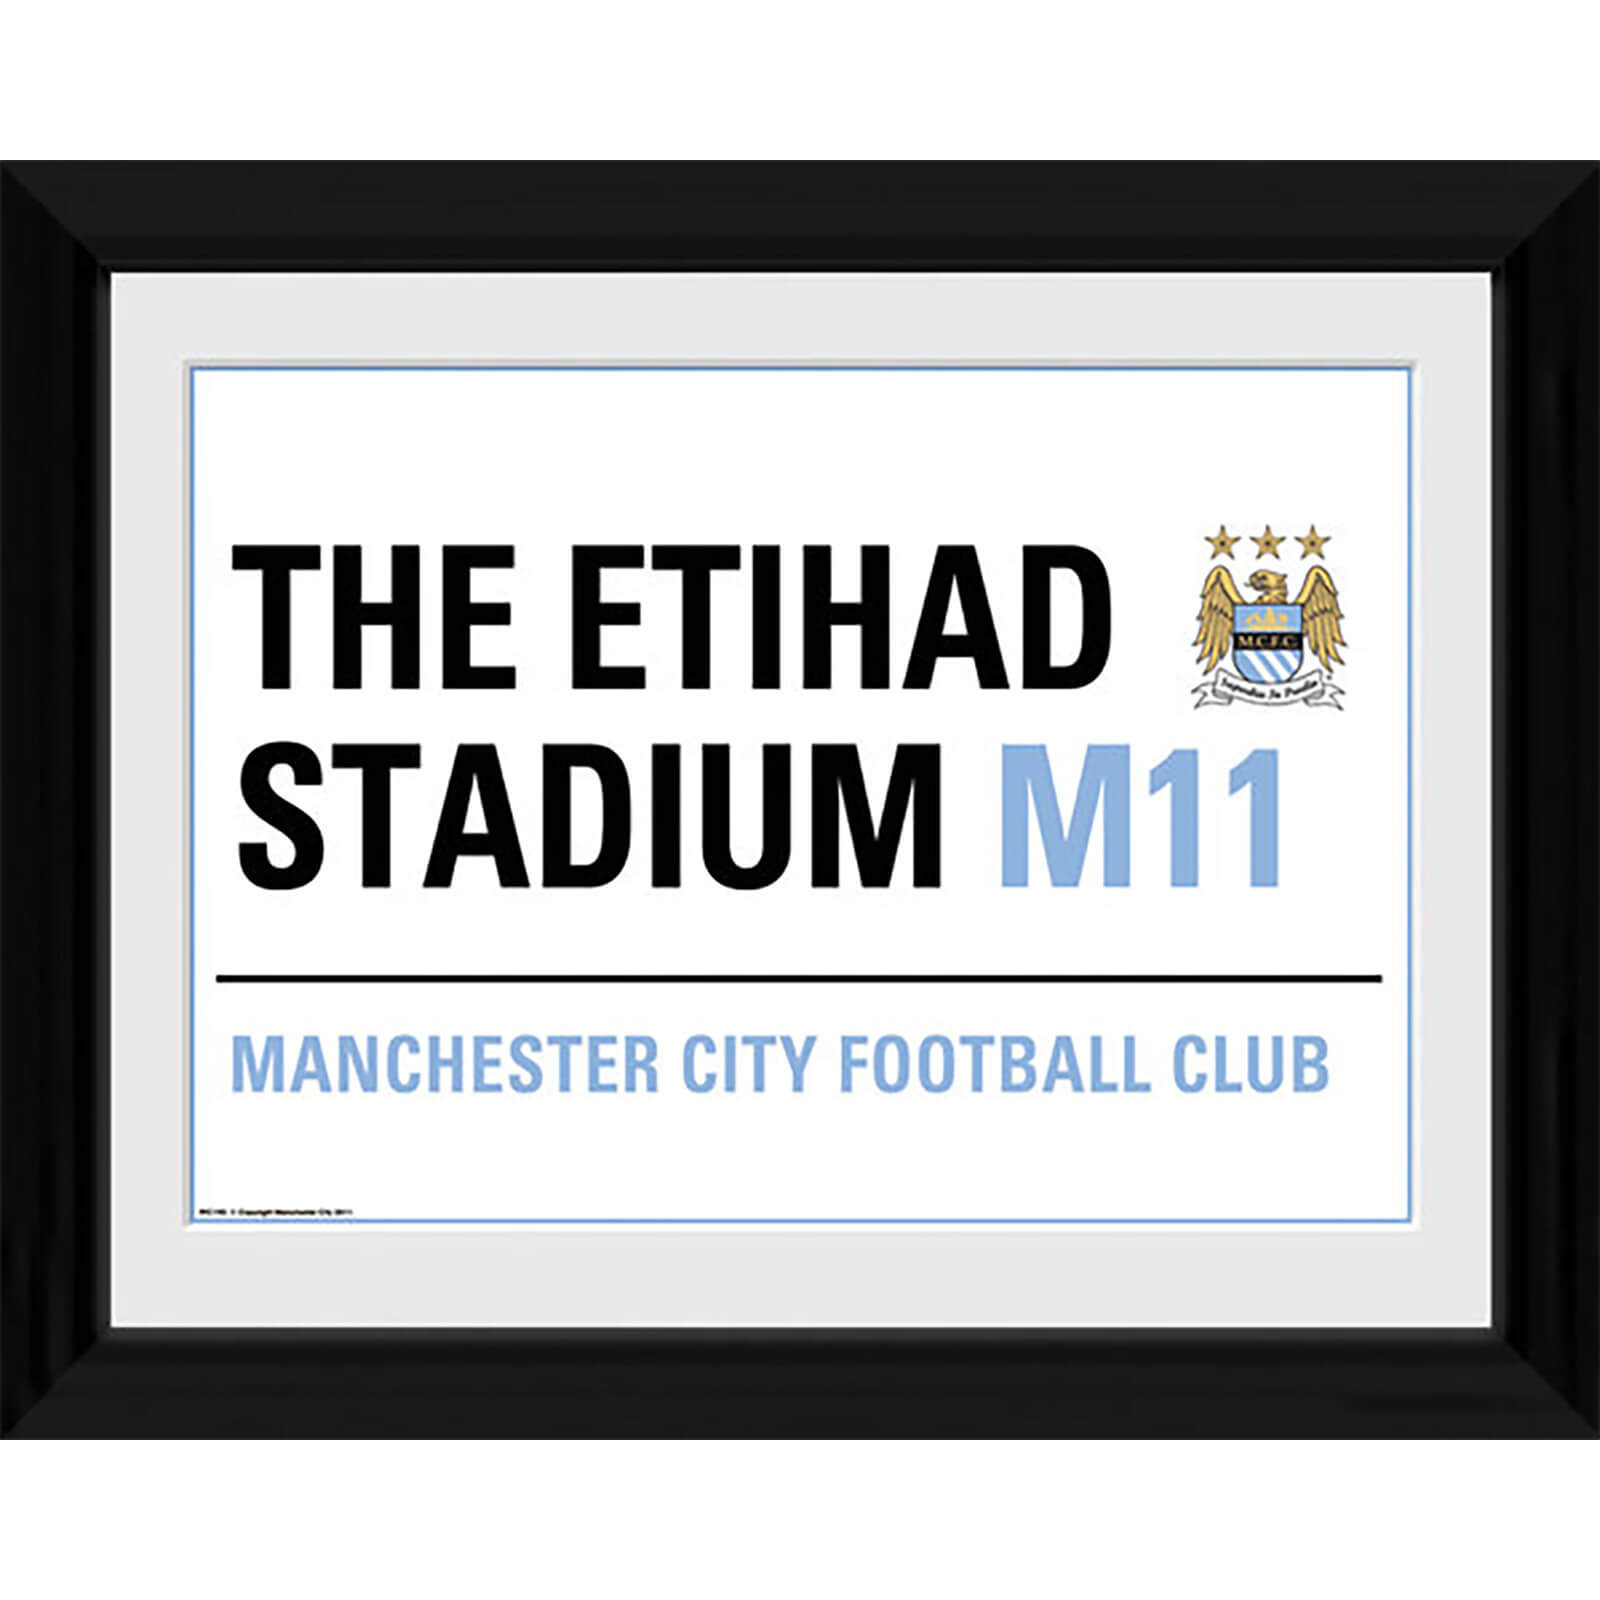 "Manchester City Street Sign - 16"""" x 12"""" Framed Photographic"